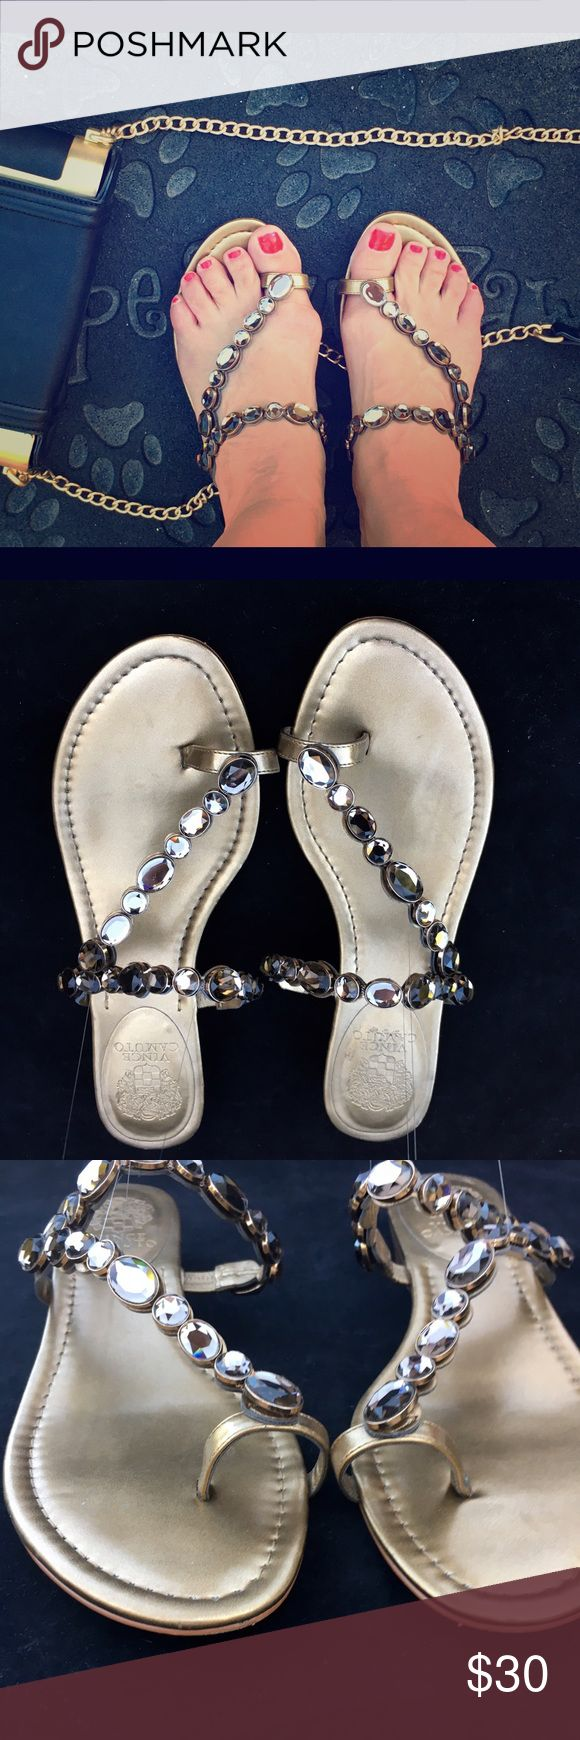 "Vince Camuto 'Imanal' Sandals Size 10 Gently Pre-owned Vince Camuto dazzling ""Imanal"" sandal with jeweled vamp, gold metallic leather, an open-toe slip-on Demi wedge (1 1/4""), and thong toe ring detail. Add shine to your summer outfits. Worn only twice and in great condition. Size 10 Vince Camuto Shoes Sandals"